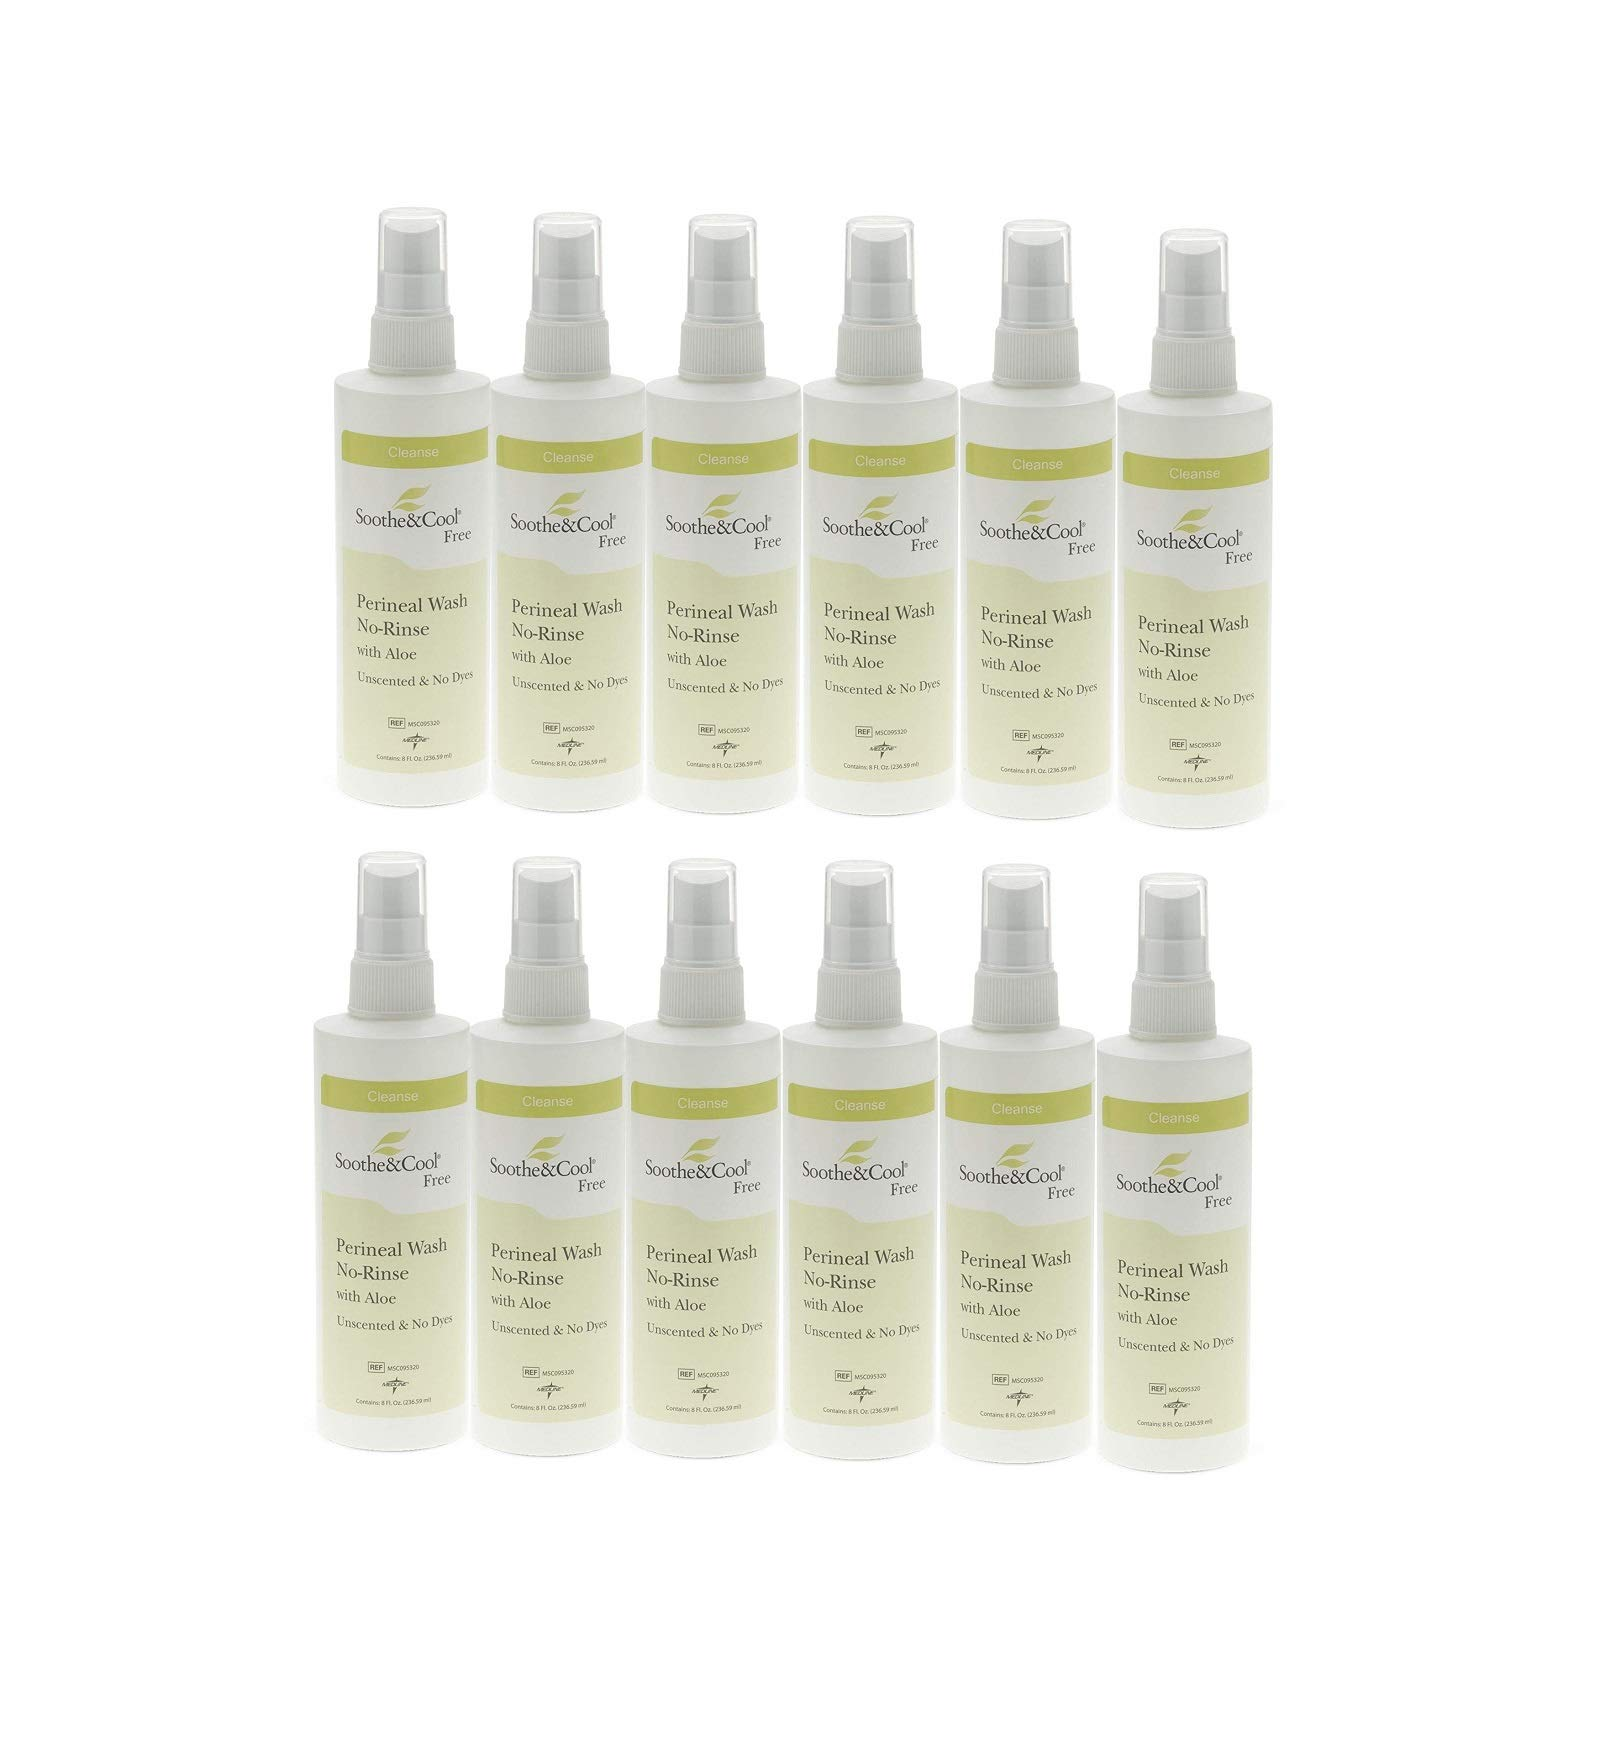 Soothe & Cool No Rinse Perineal Spray Case of 12 by Medline